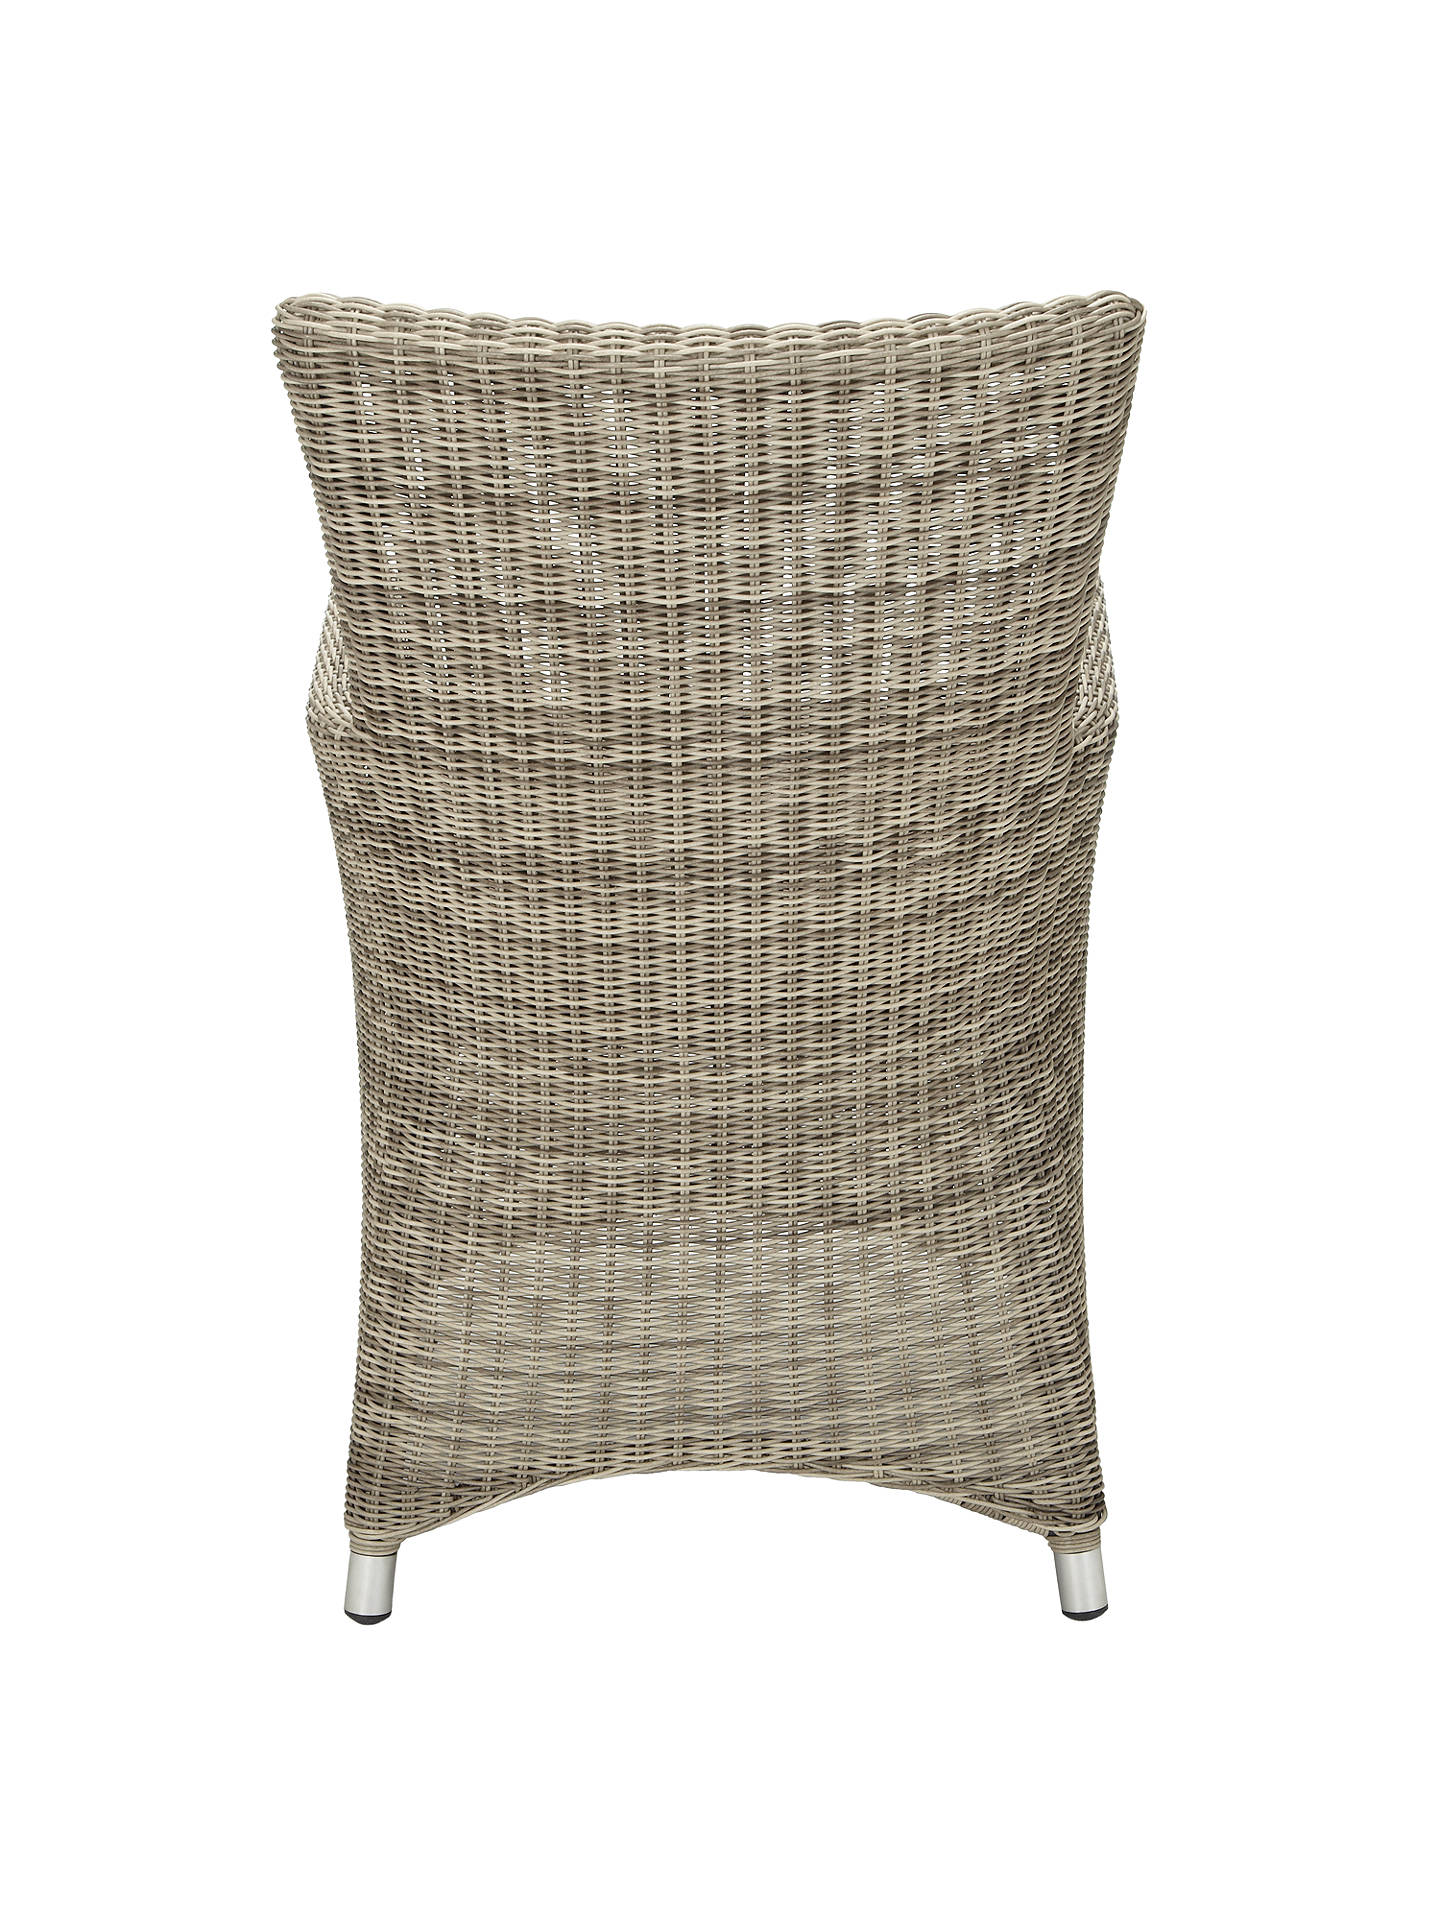 Buy John Lewis & Partners Dante Garden Dining Armchair, Natural Online at johnlewis.com